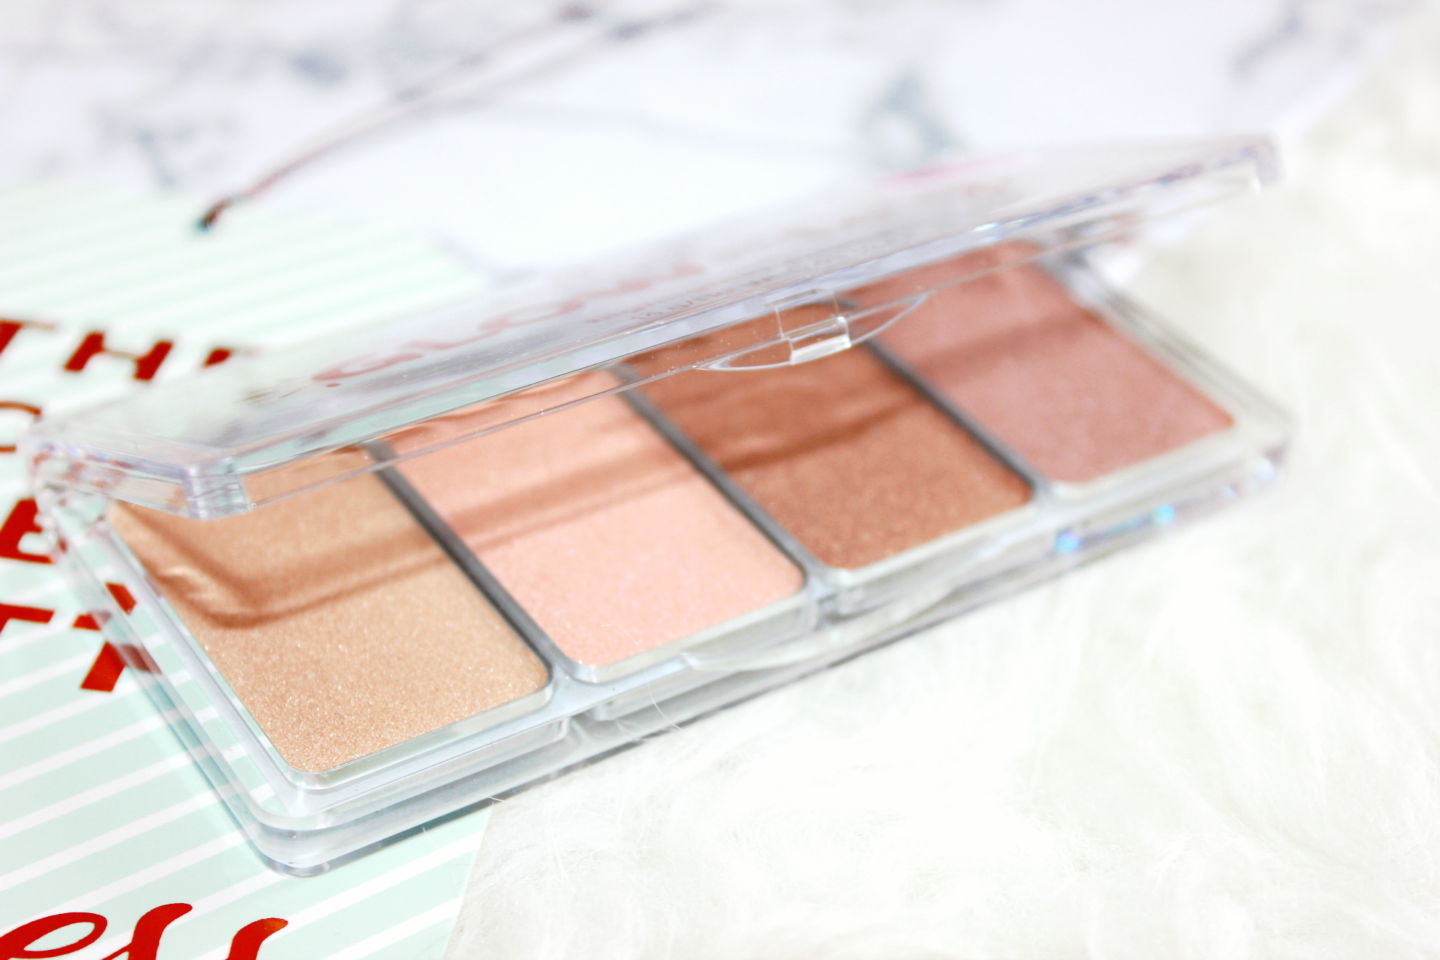 Essence-Glow-To-Go-Highlighter-Palette-Review